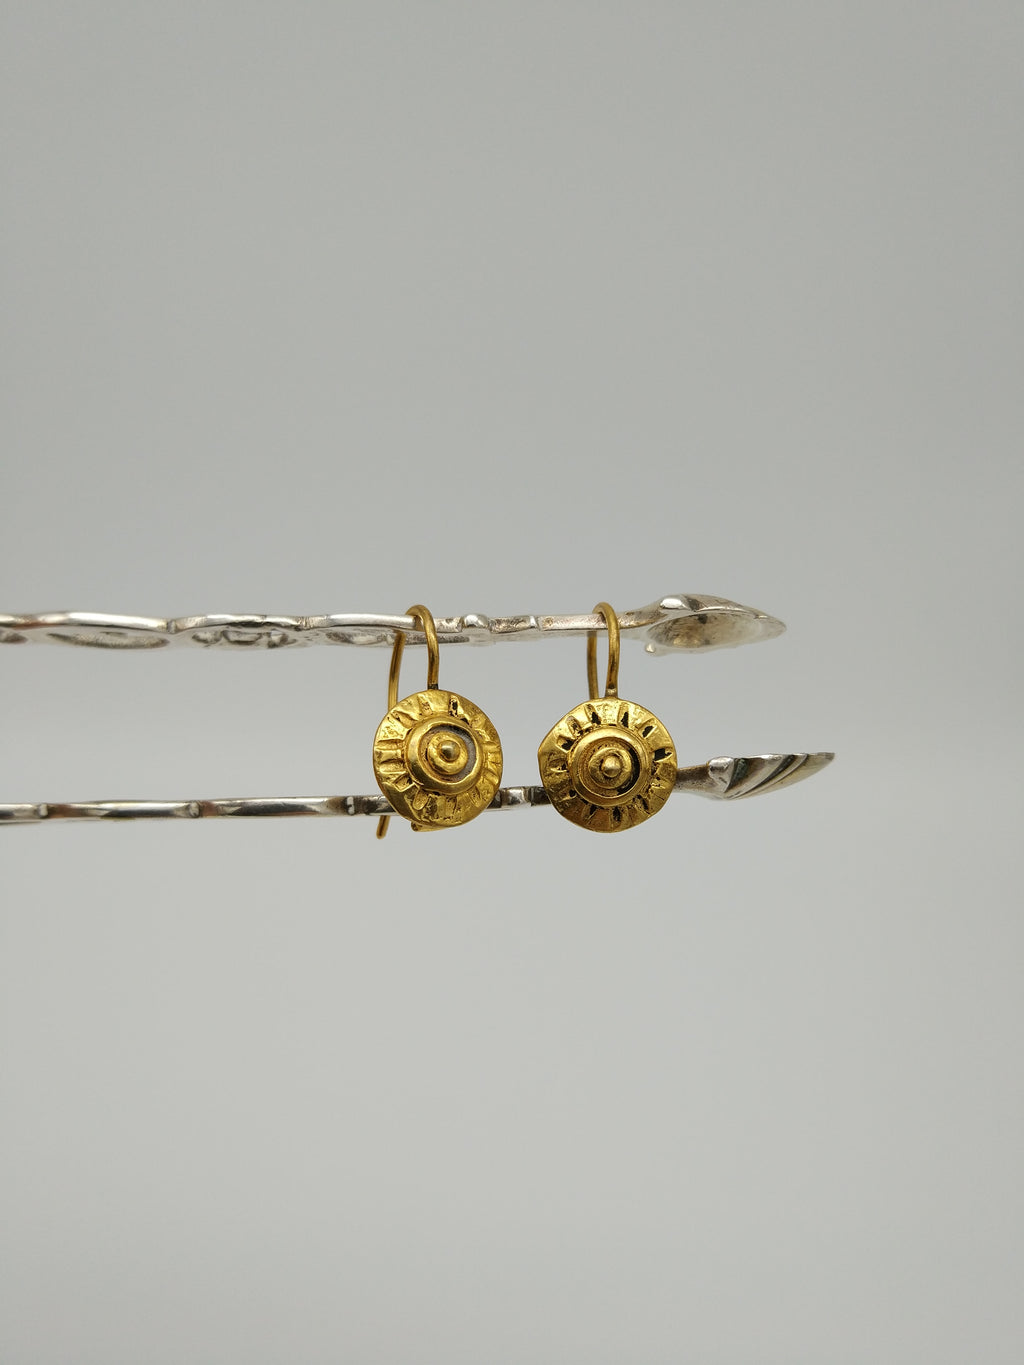 Gold Puce earrings by Elisabeth Riveiro - L'Atelier Natalia Willmott